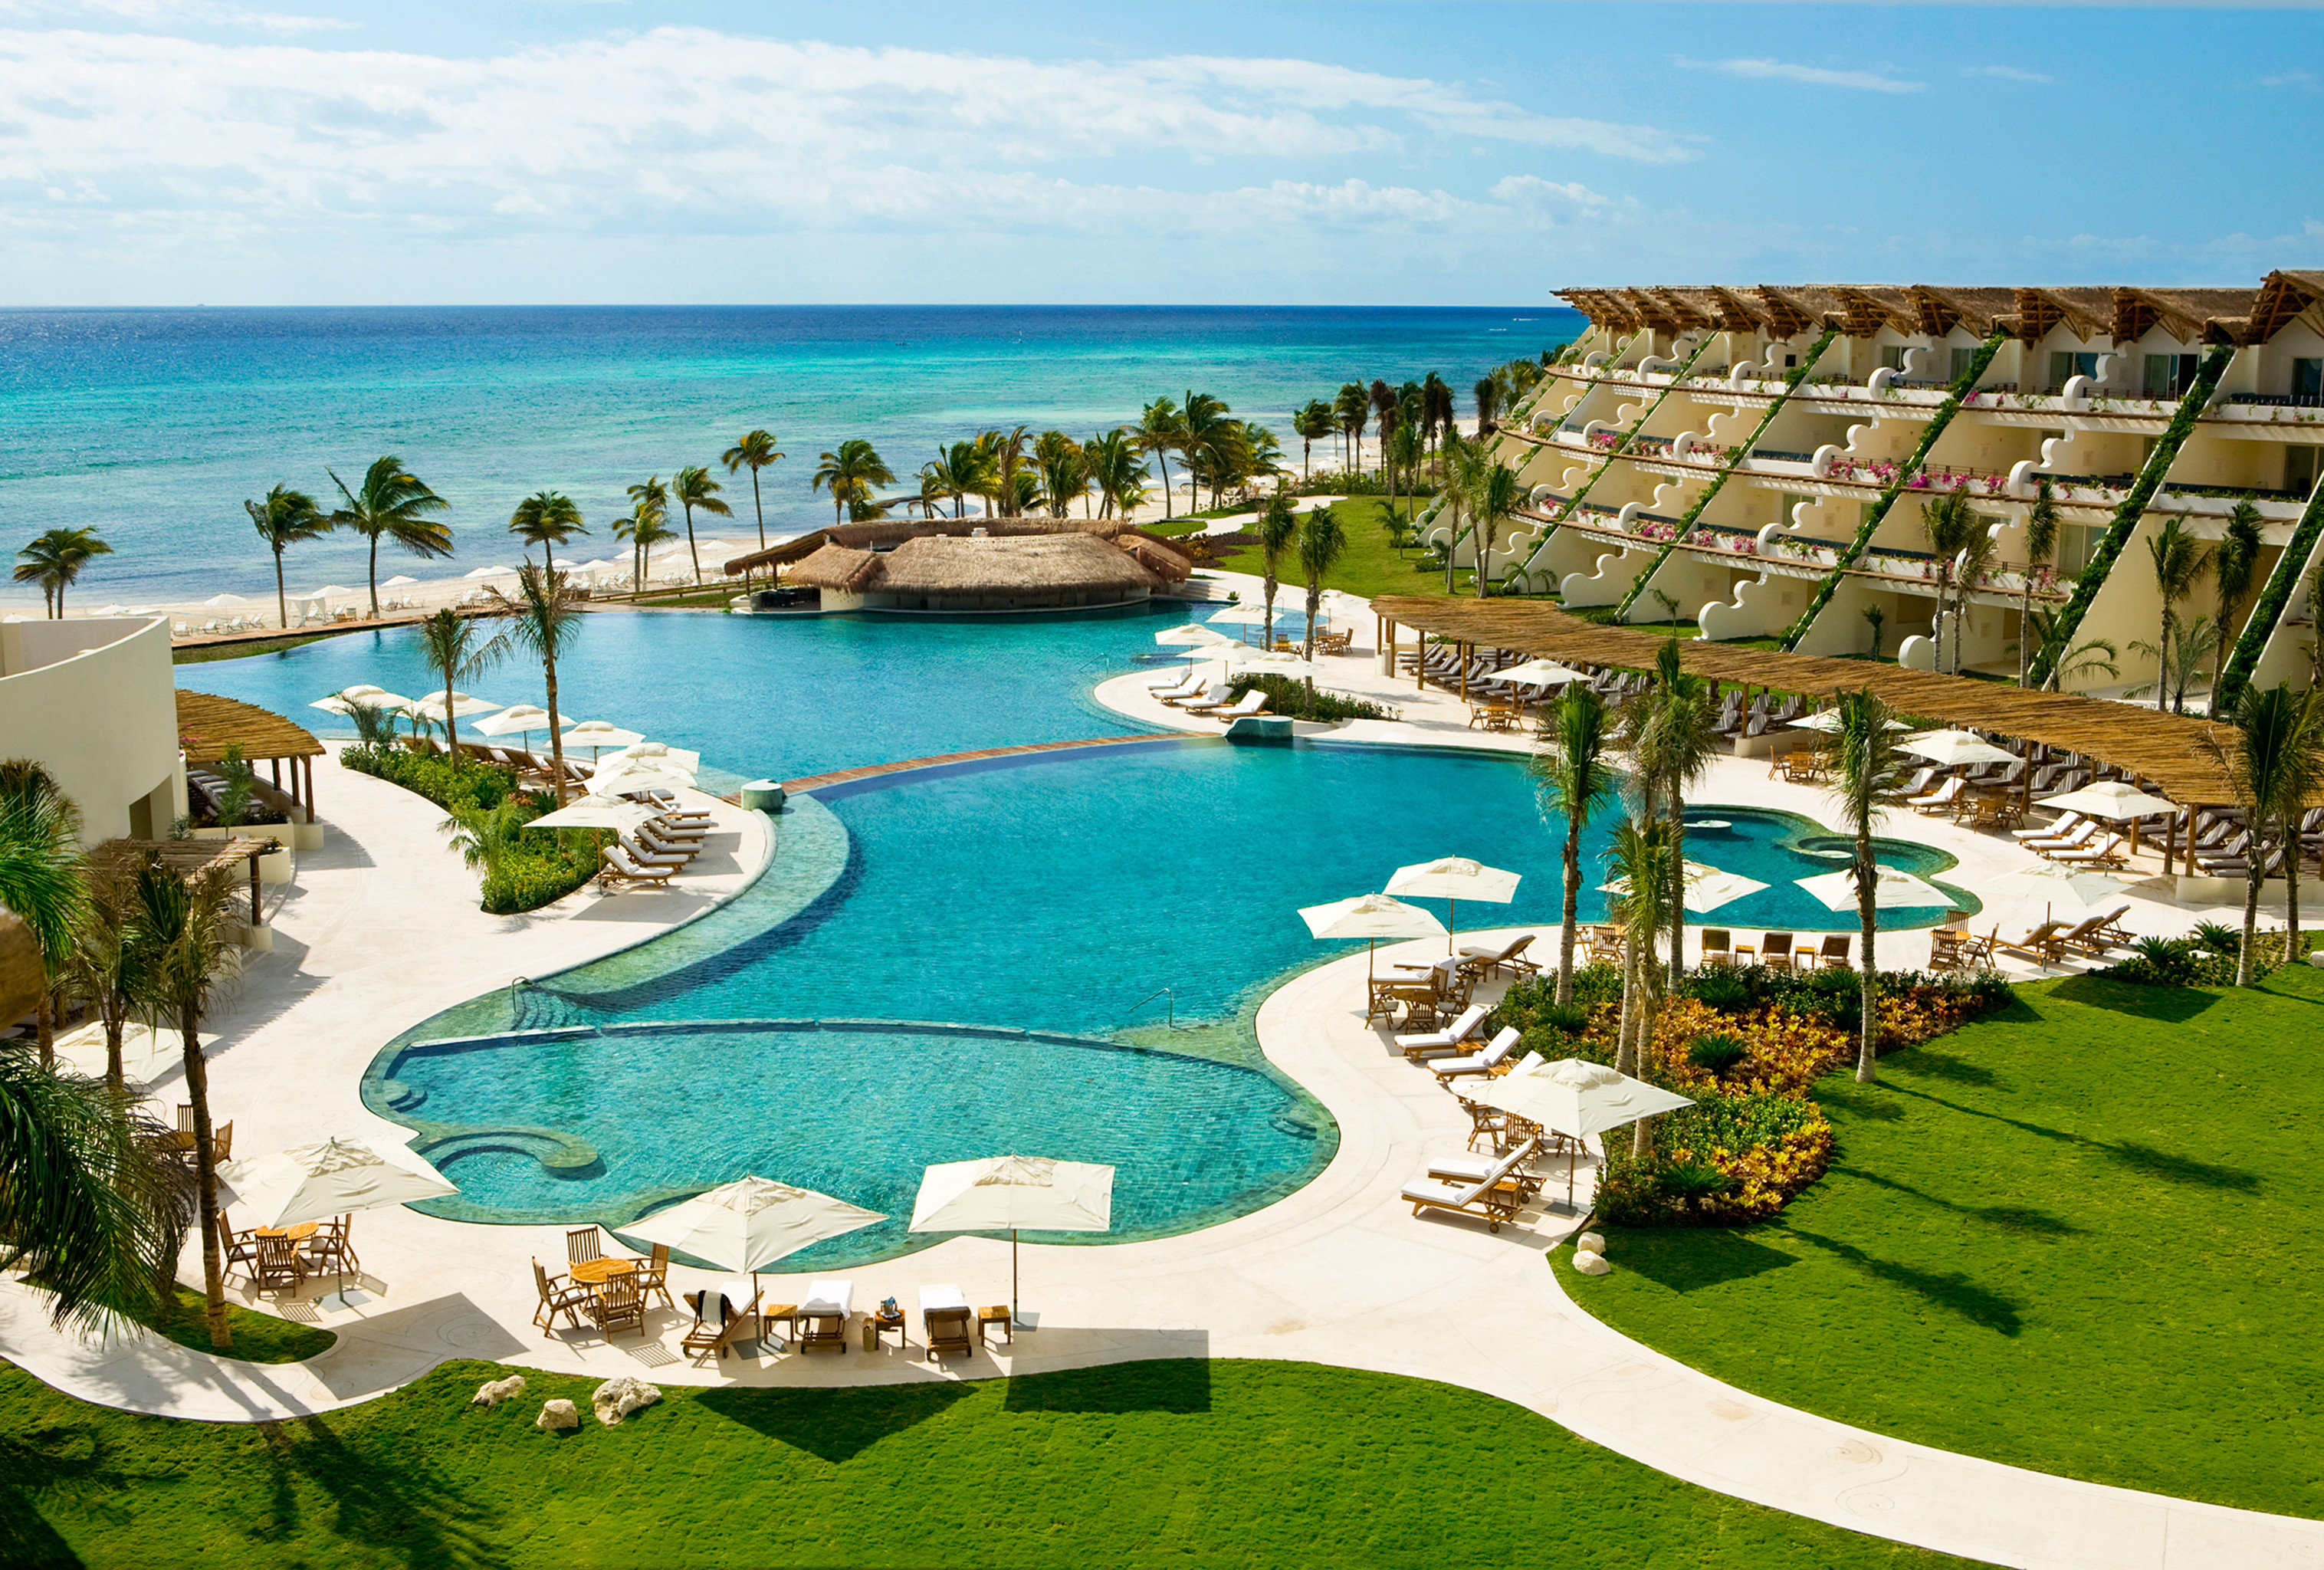 All-Inclusive Resorts Beachfront Elegant Family Travel Hotels Living Lounge Luxury Modern Pool Romance sky water outdoor grass umbrella swimming pool leisure Resort property chair estate lawn vacation caribbean bay mansion resort town Lagoon Villa lined